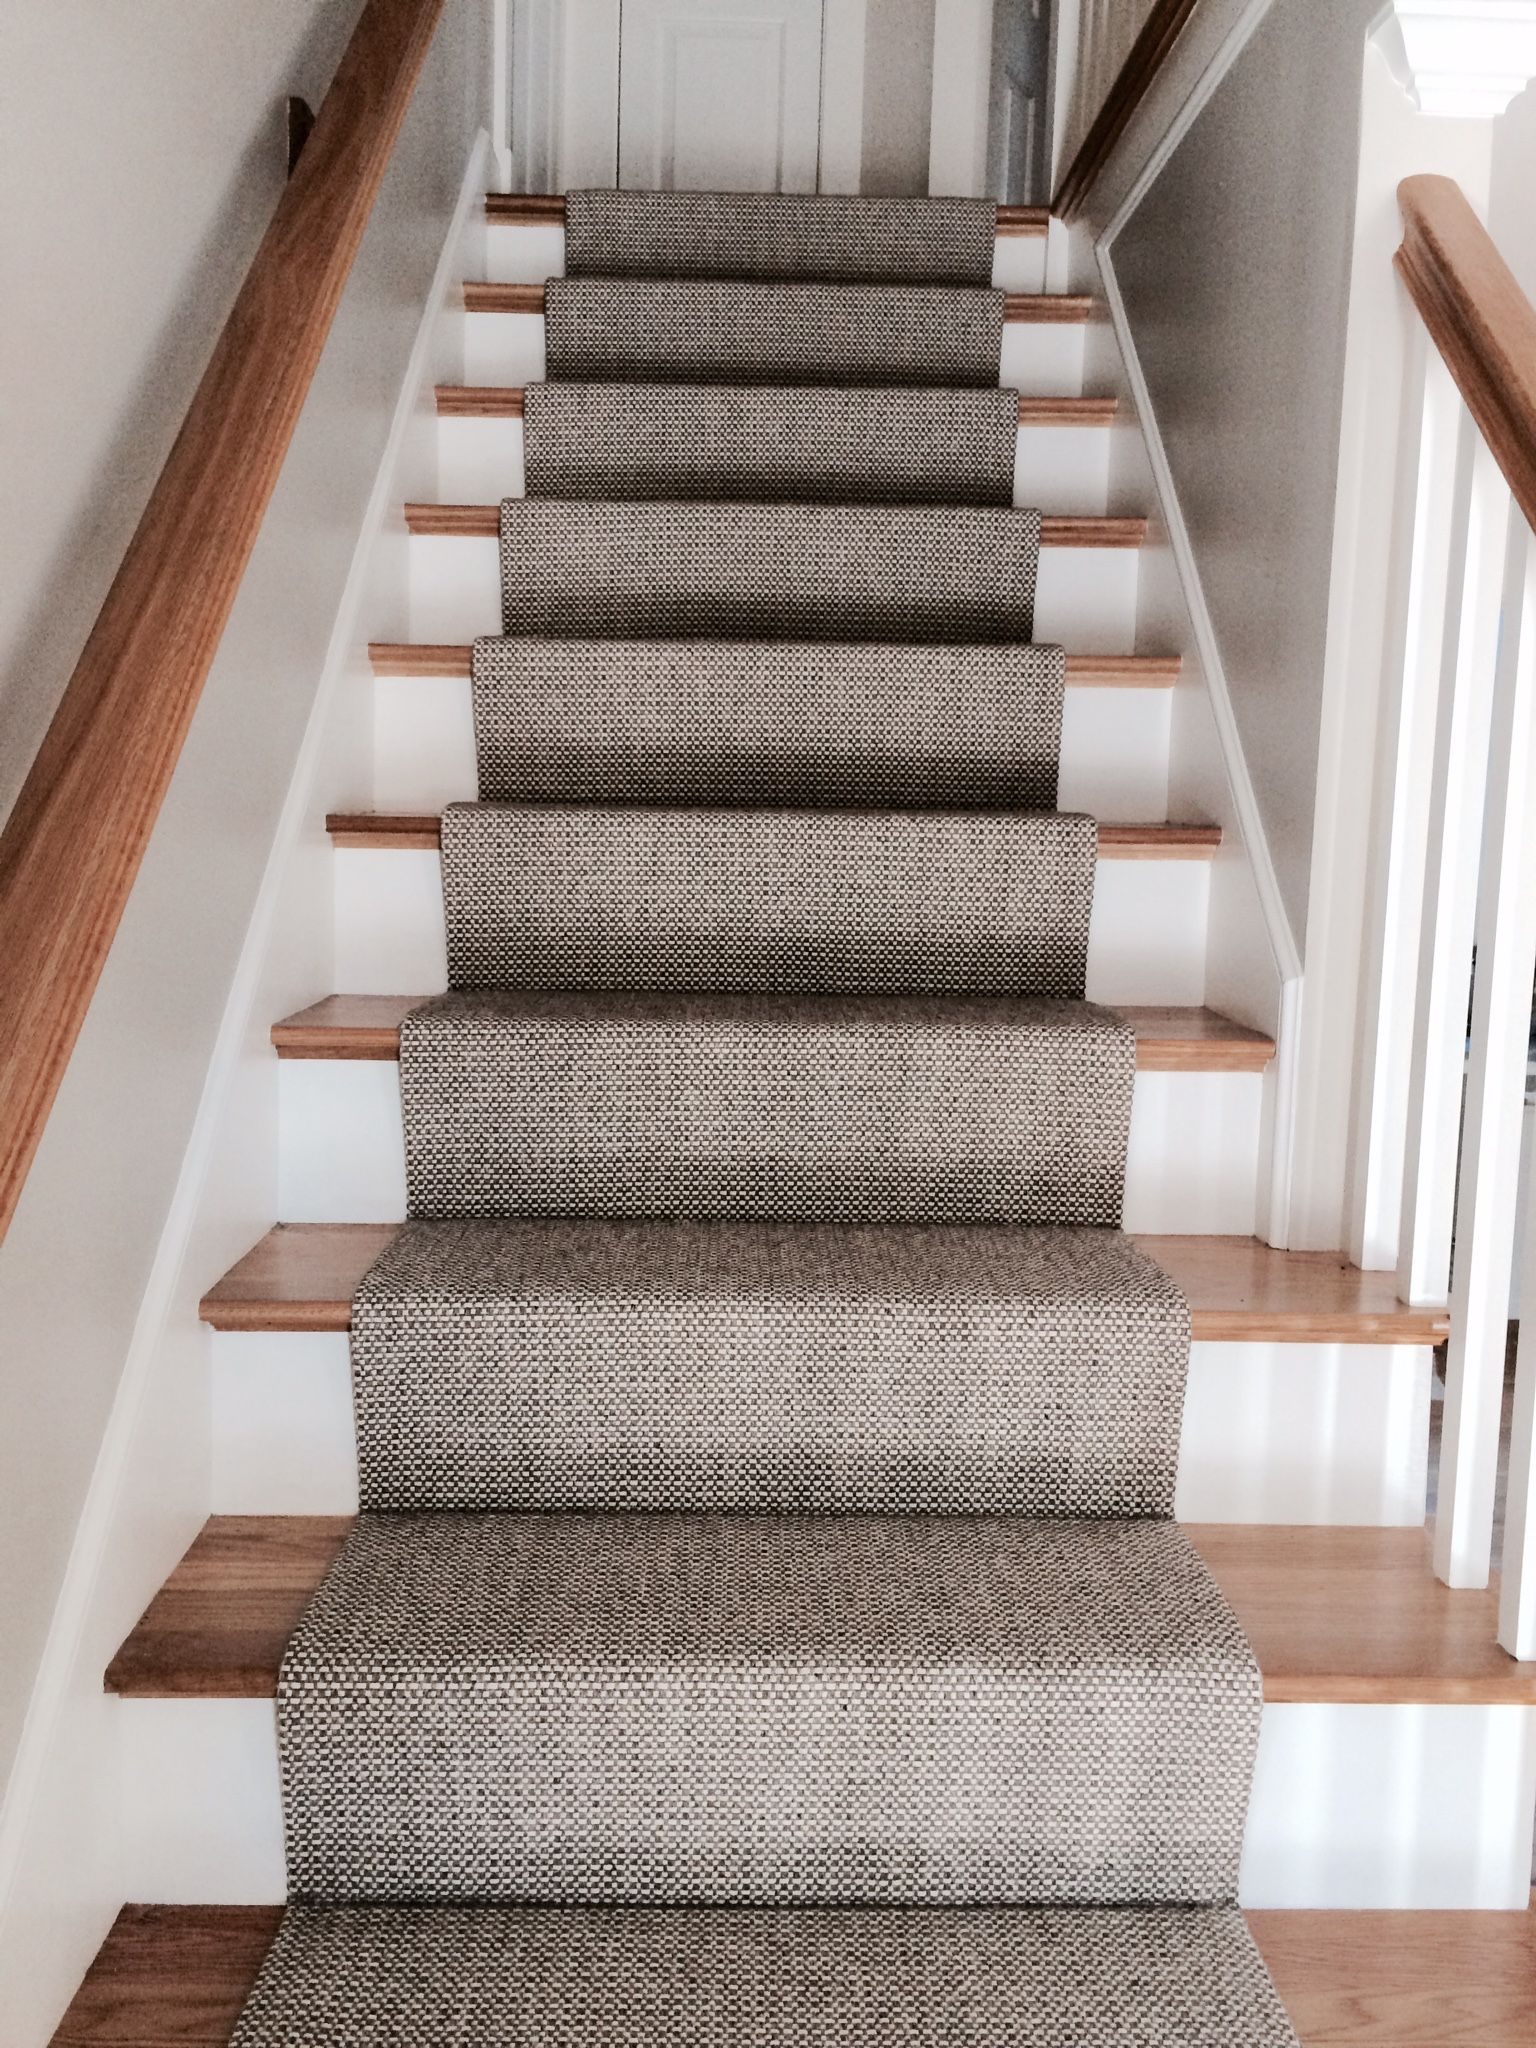 Superieur Woven Wool Stair Runner That We Fabricated Using A Fold And Stitch Method